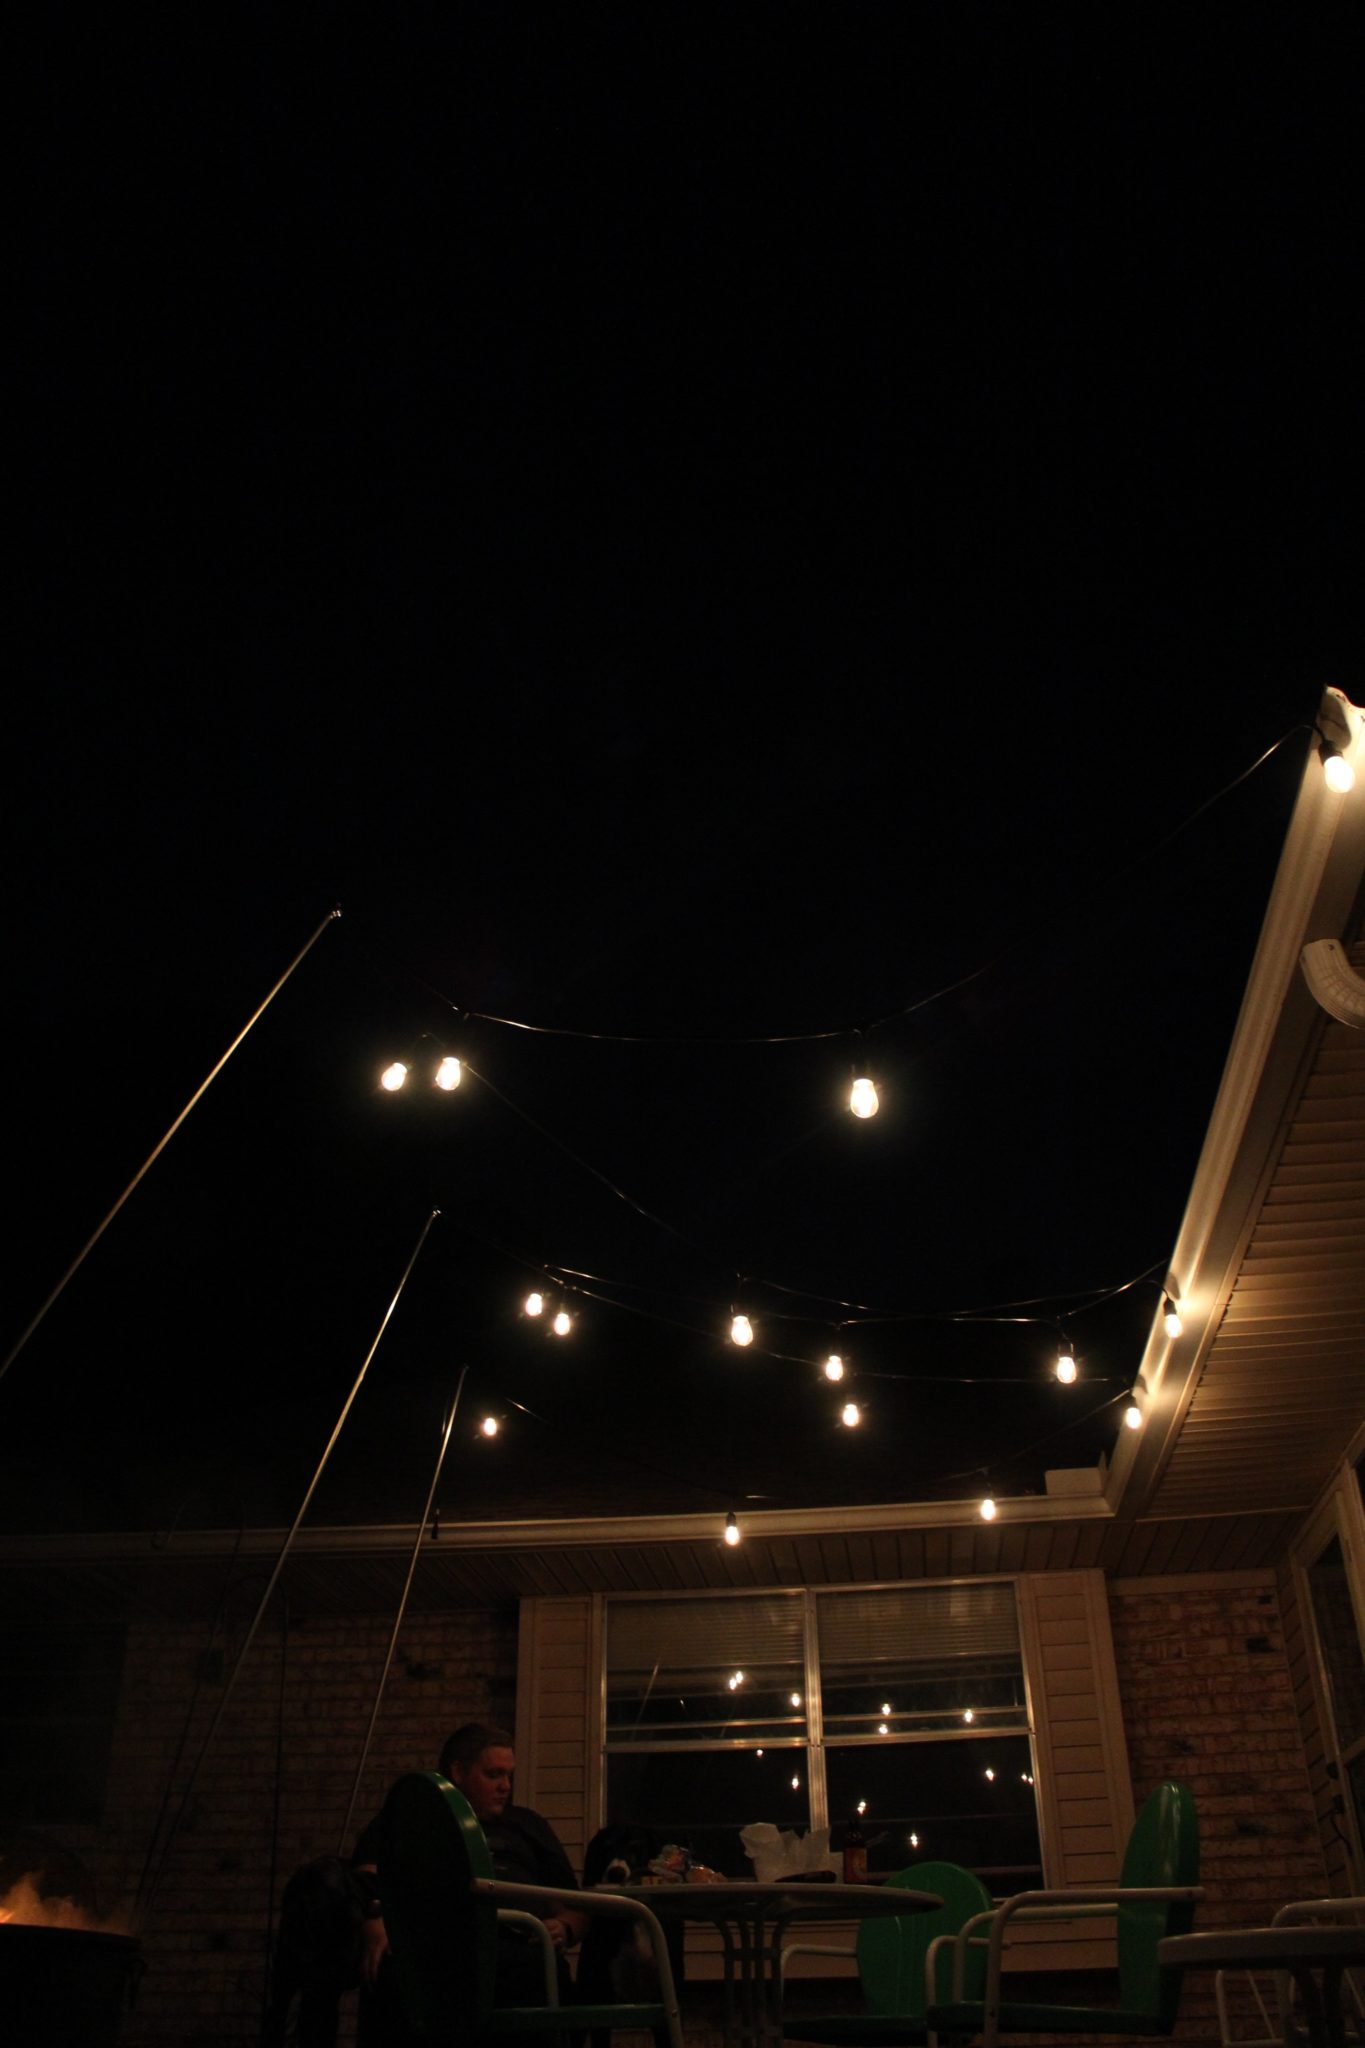 Outdoor Lighting How to Hang Patio Lights The Easy Way